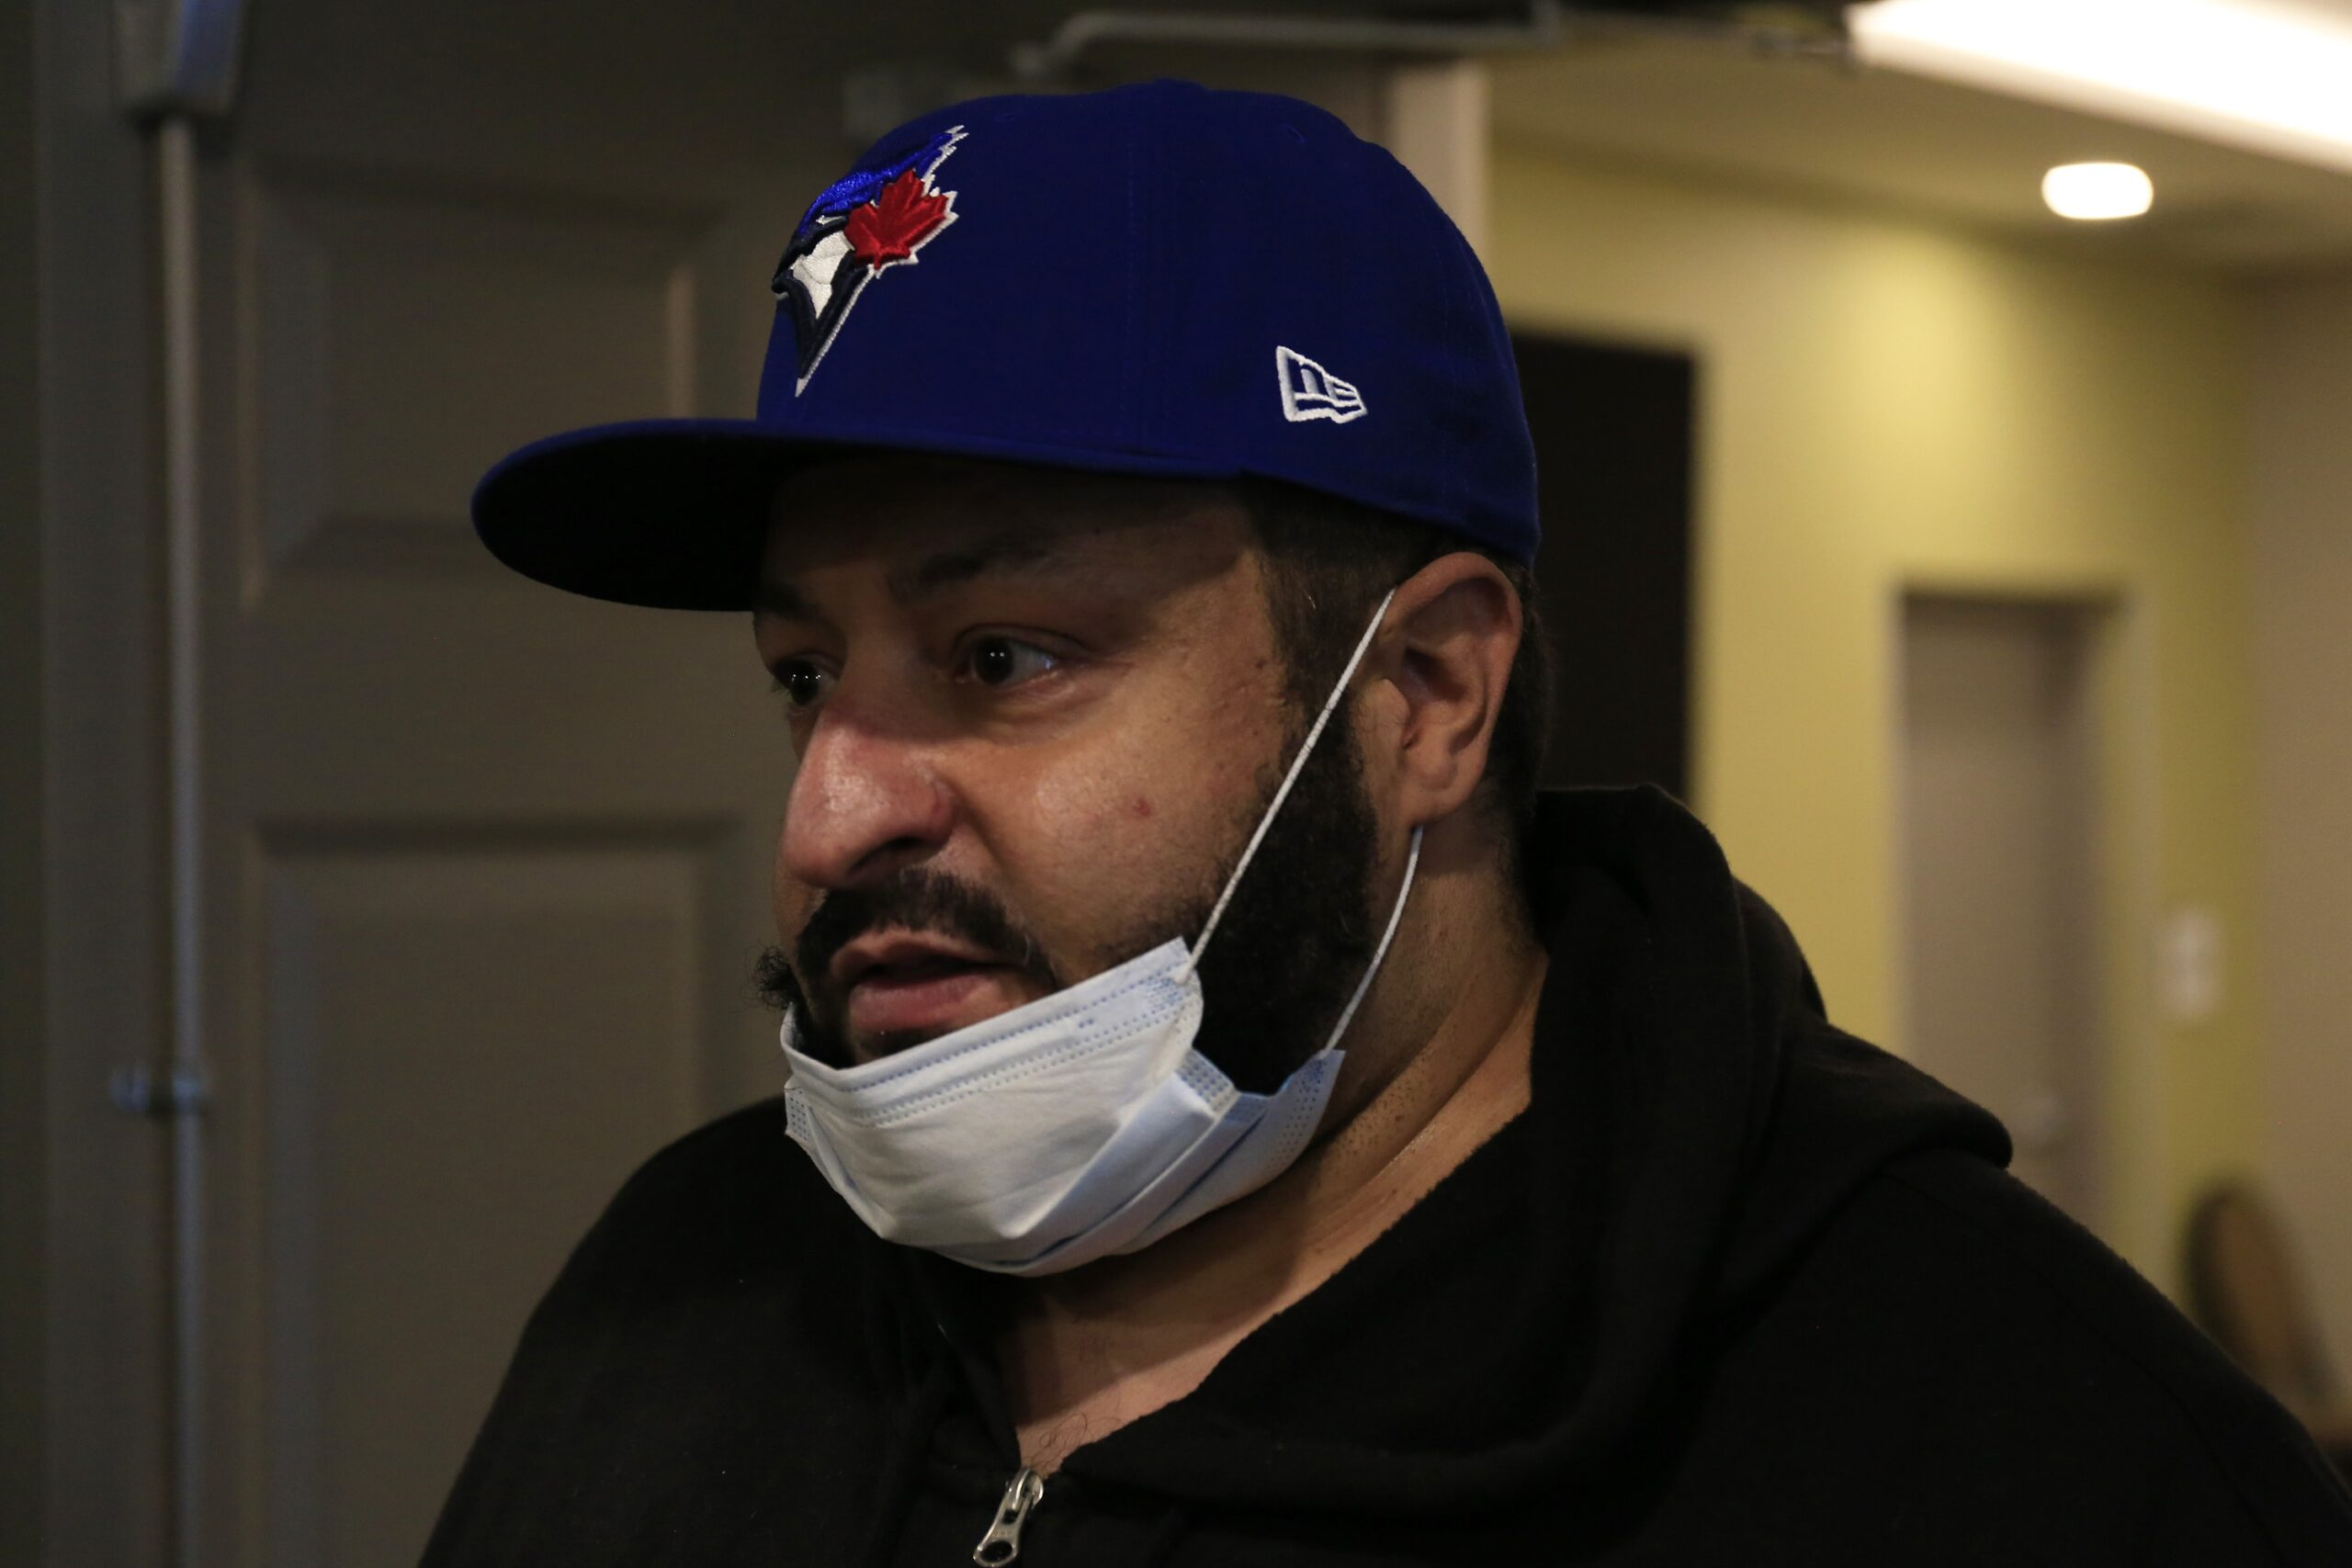 Bearded Black man in Blue Jays cap wearing a surgical mask slung under his chin.